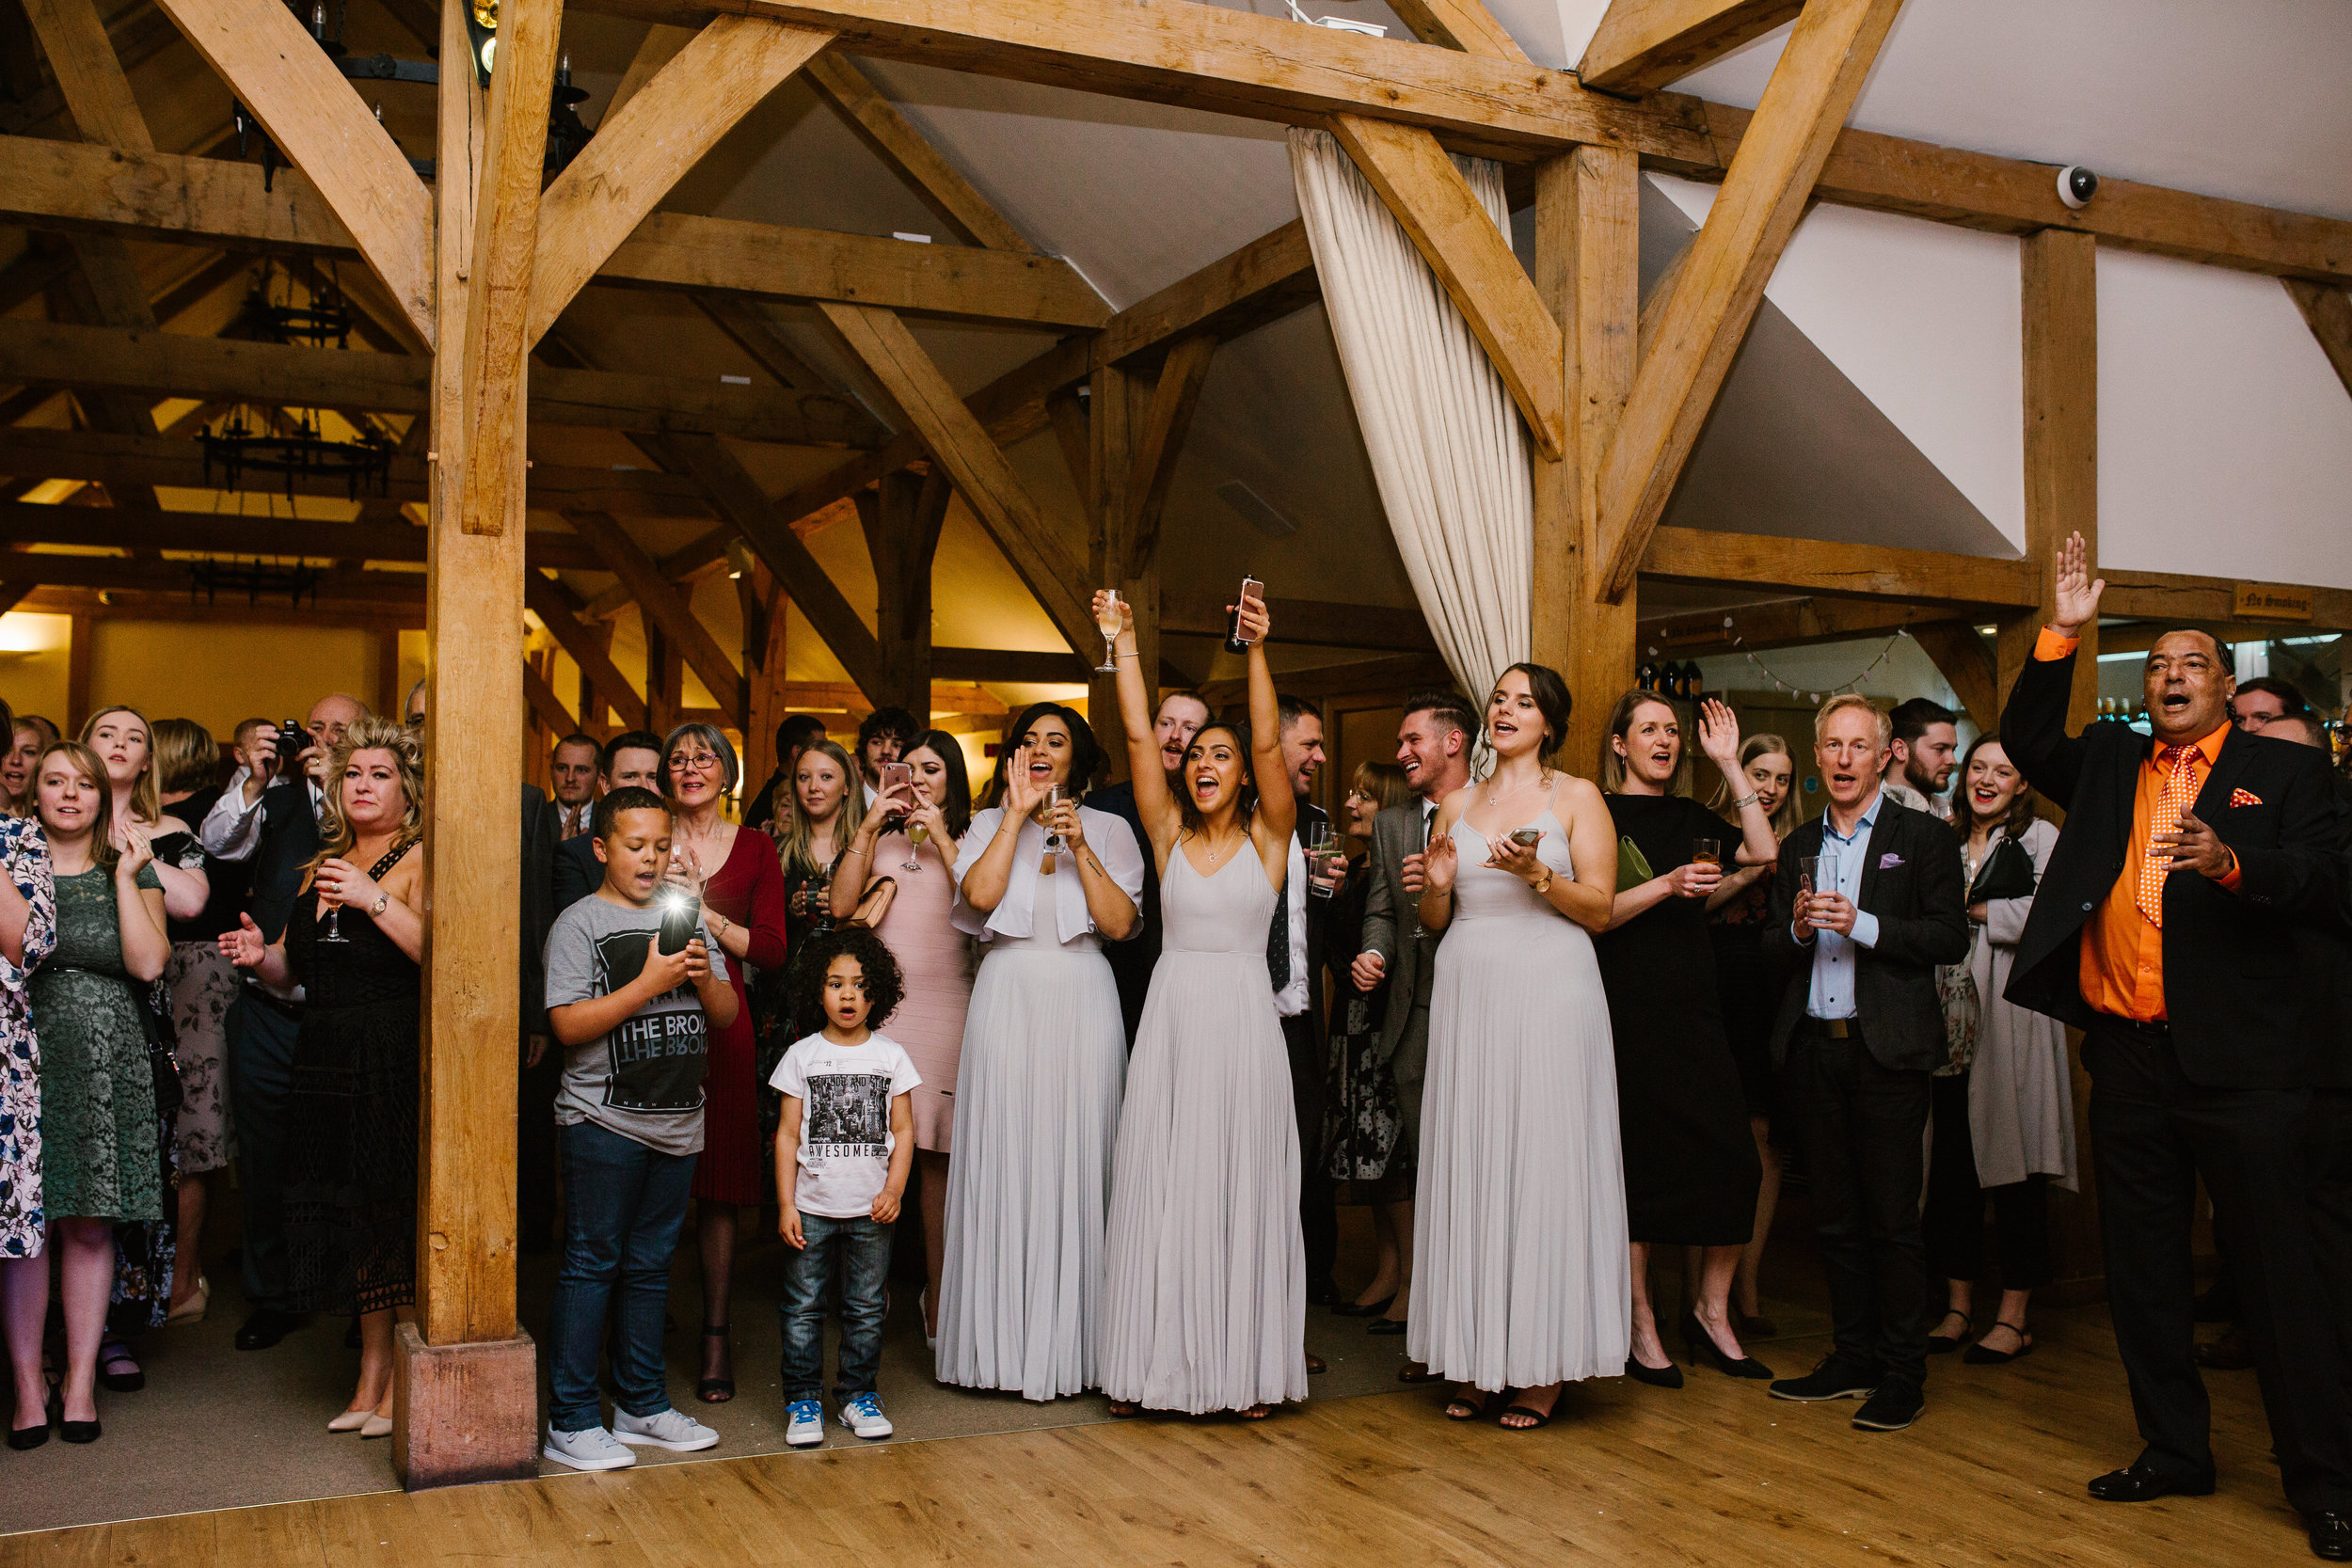 Sandhole Oak Barn, Rustic Wedding, DIY Wedding, Manchester wedding photographer, Birmingham wedding photographer, barn wedding-306.jpg